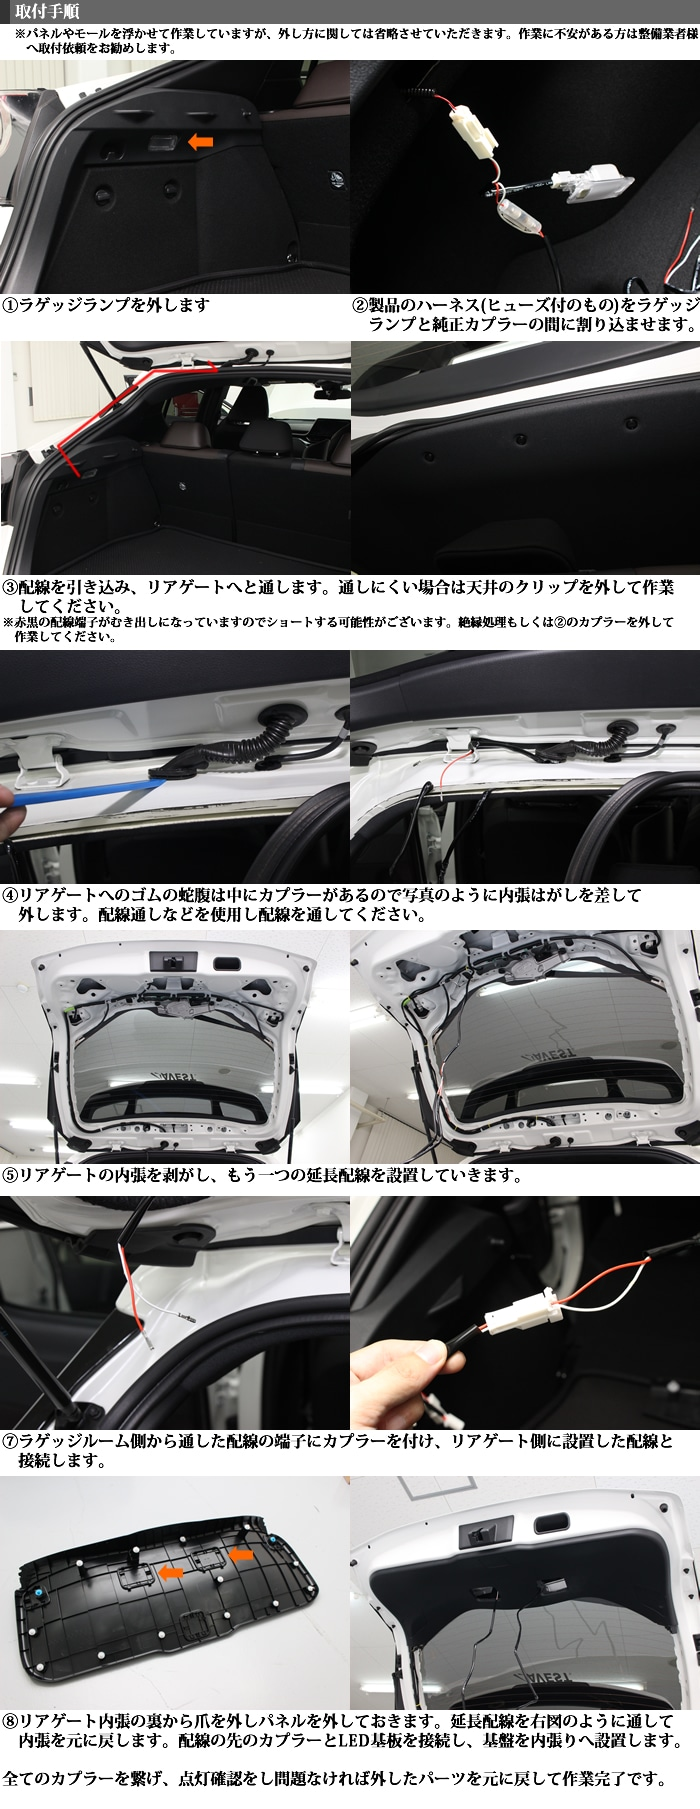 TOYOTA/C-HR/NGX50/ZYX10/ラゲッジLED増設キット/トヨタ/内装/爆光